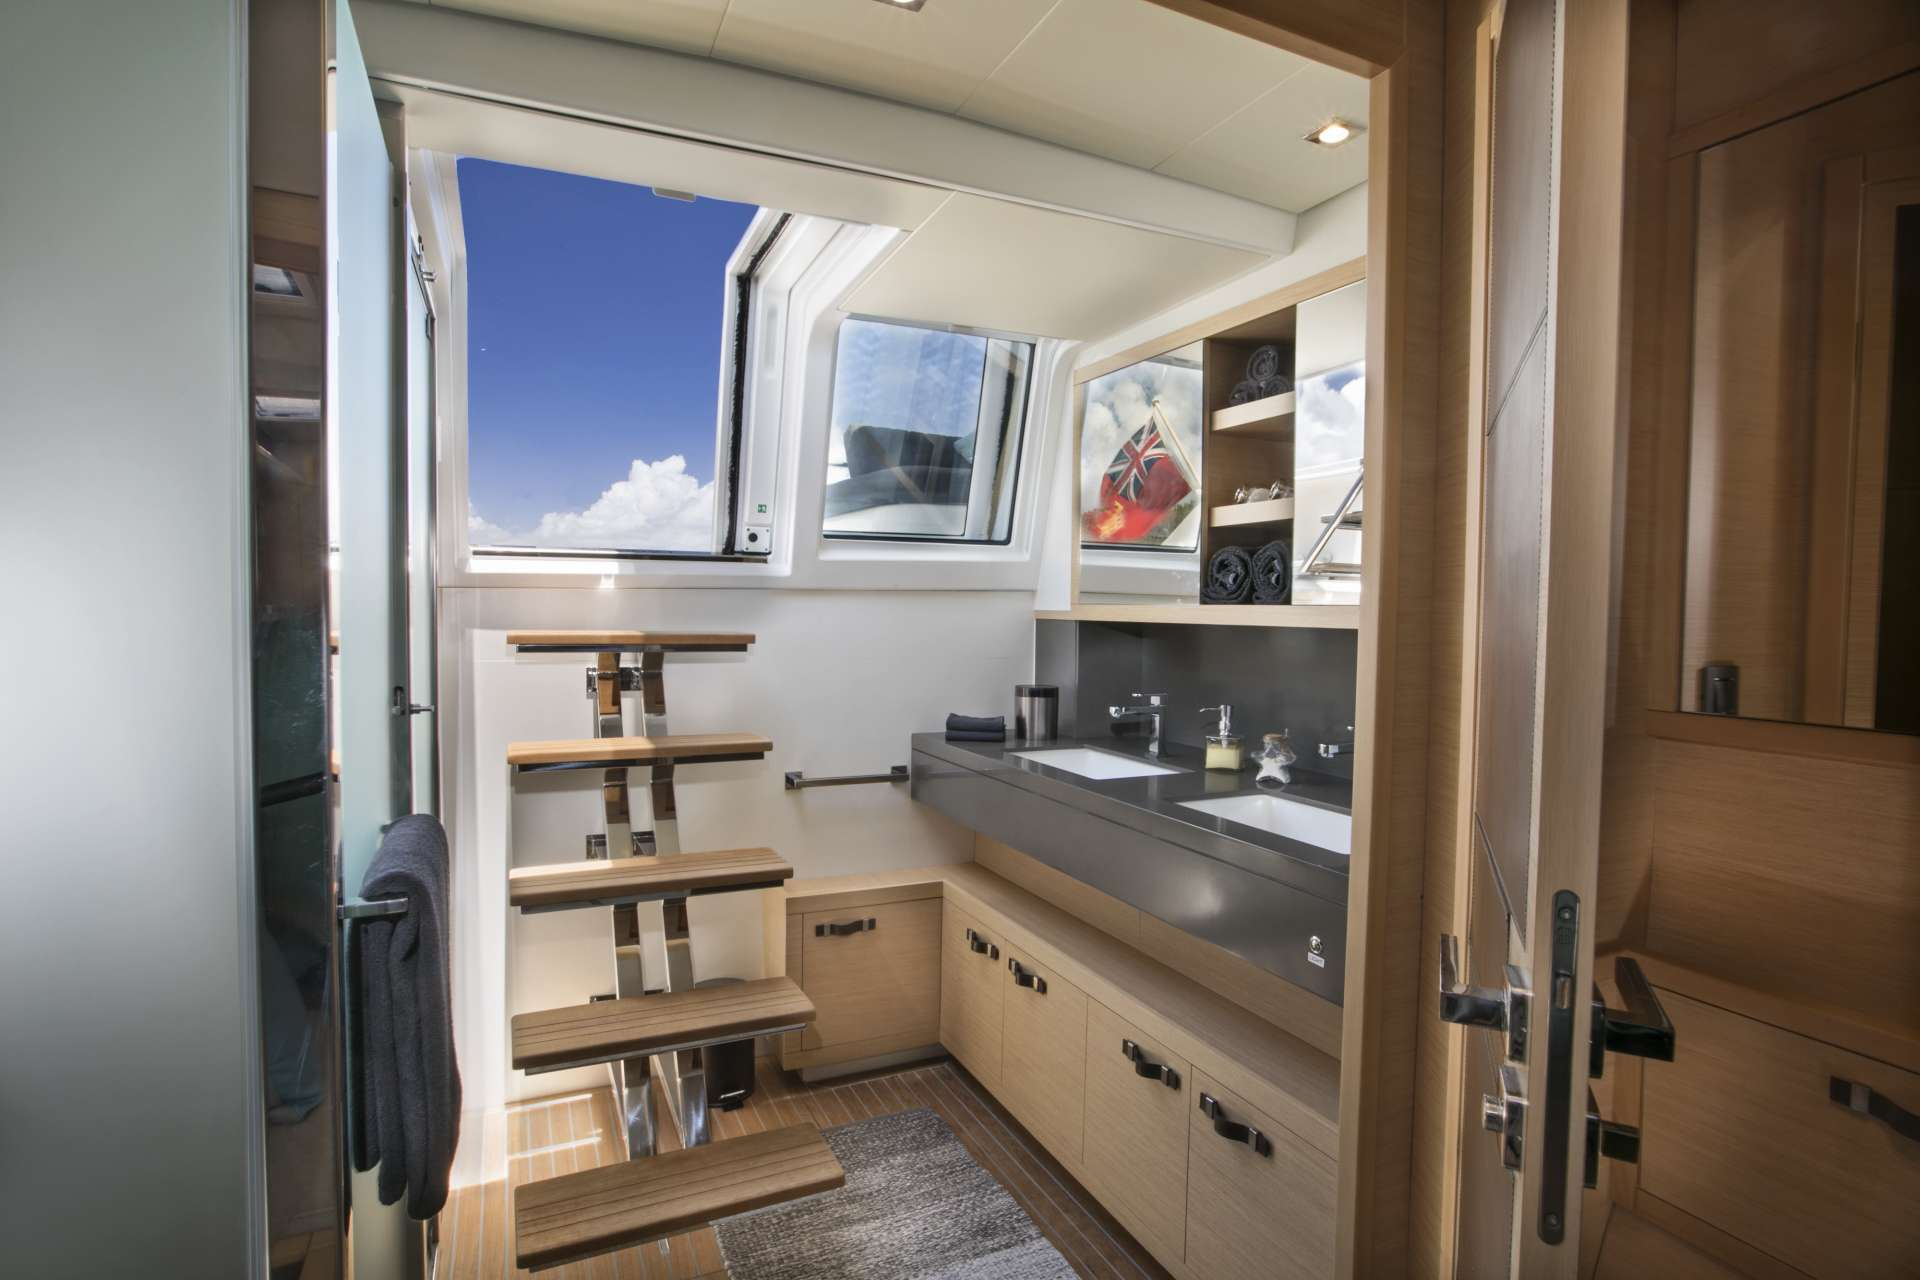 Master cabin with his & hers vanity sink area